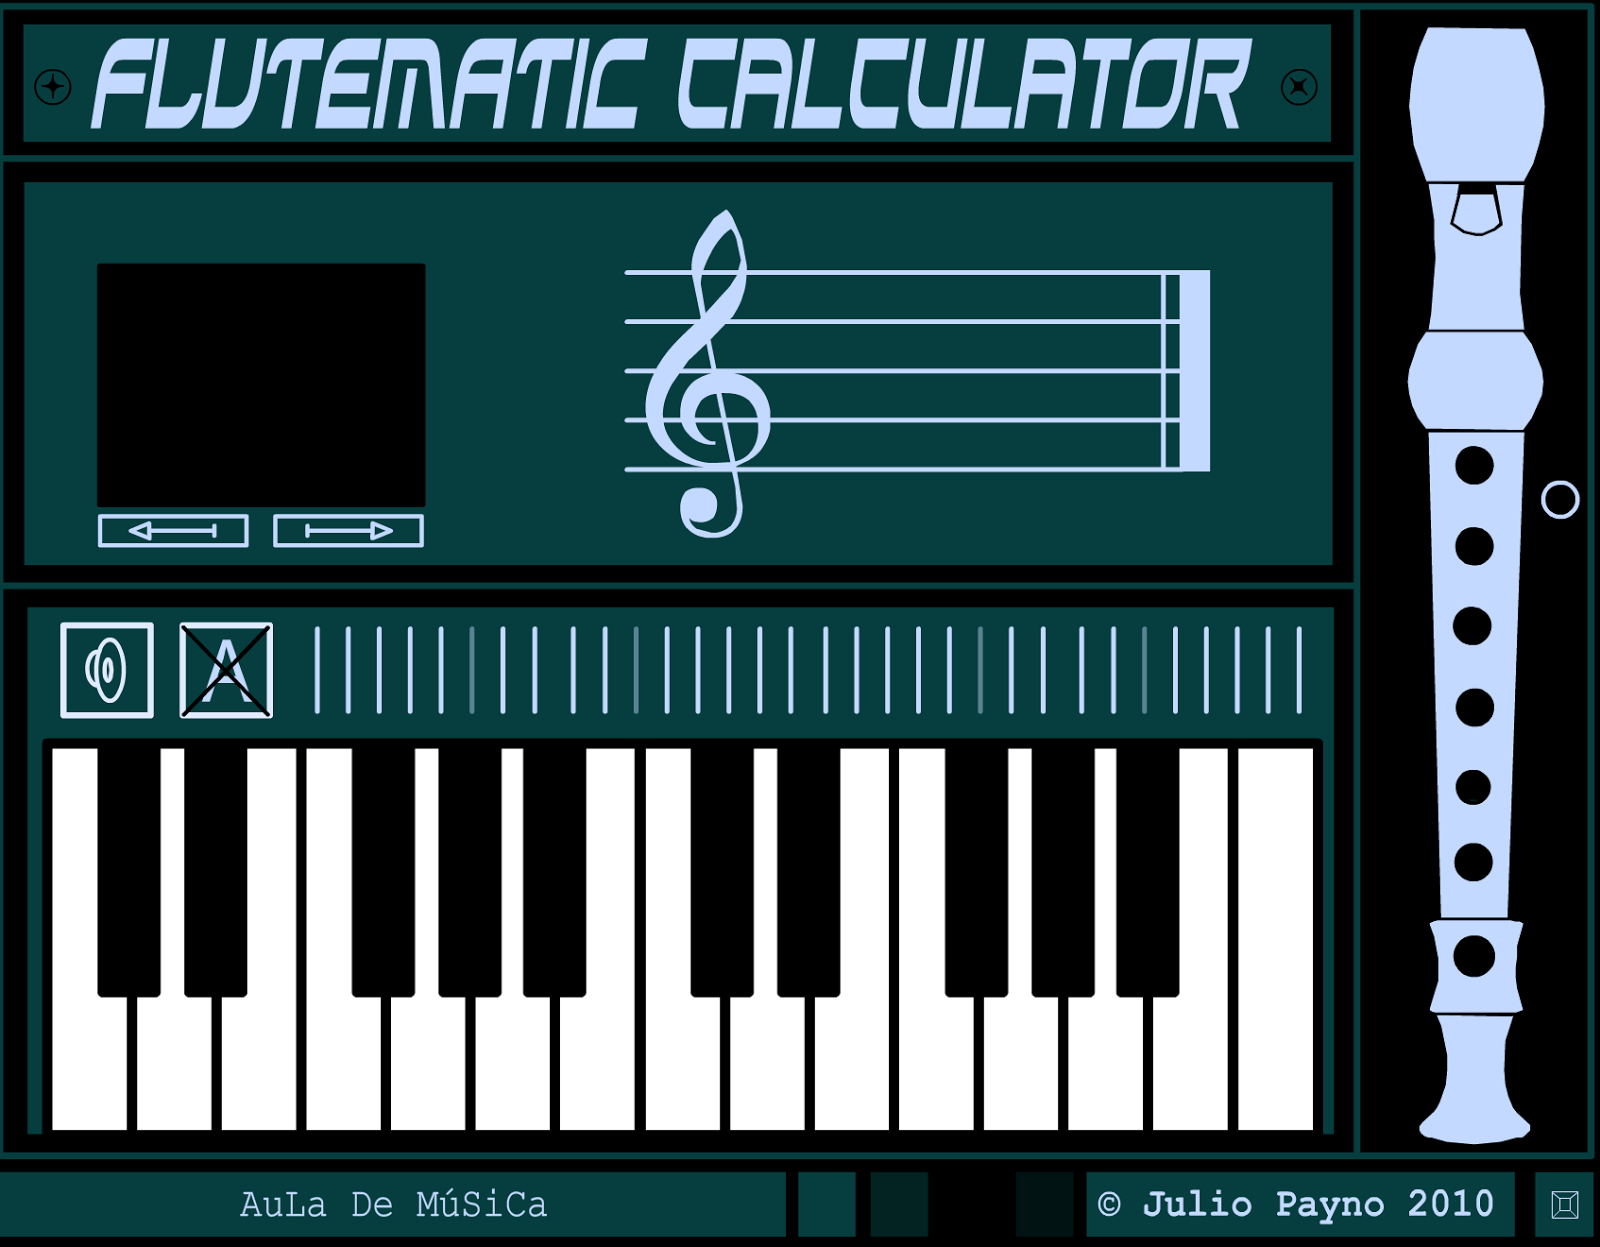 Flutematic Calculator